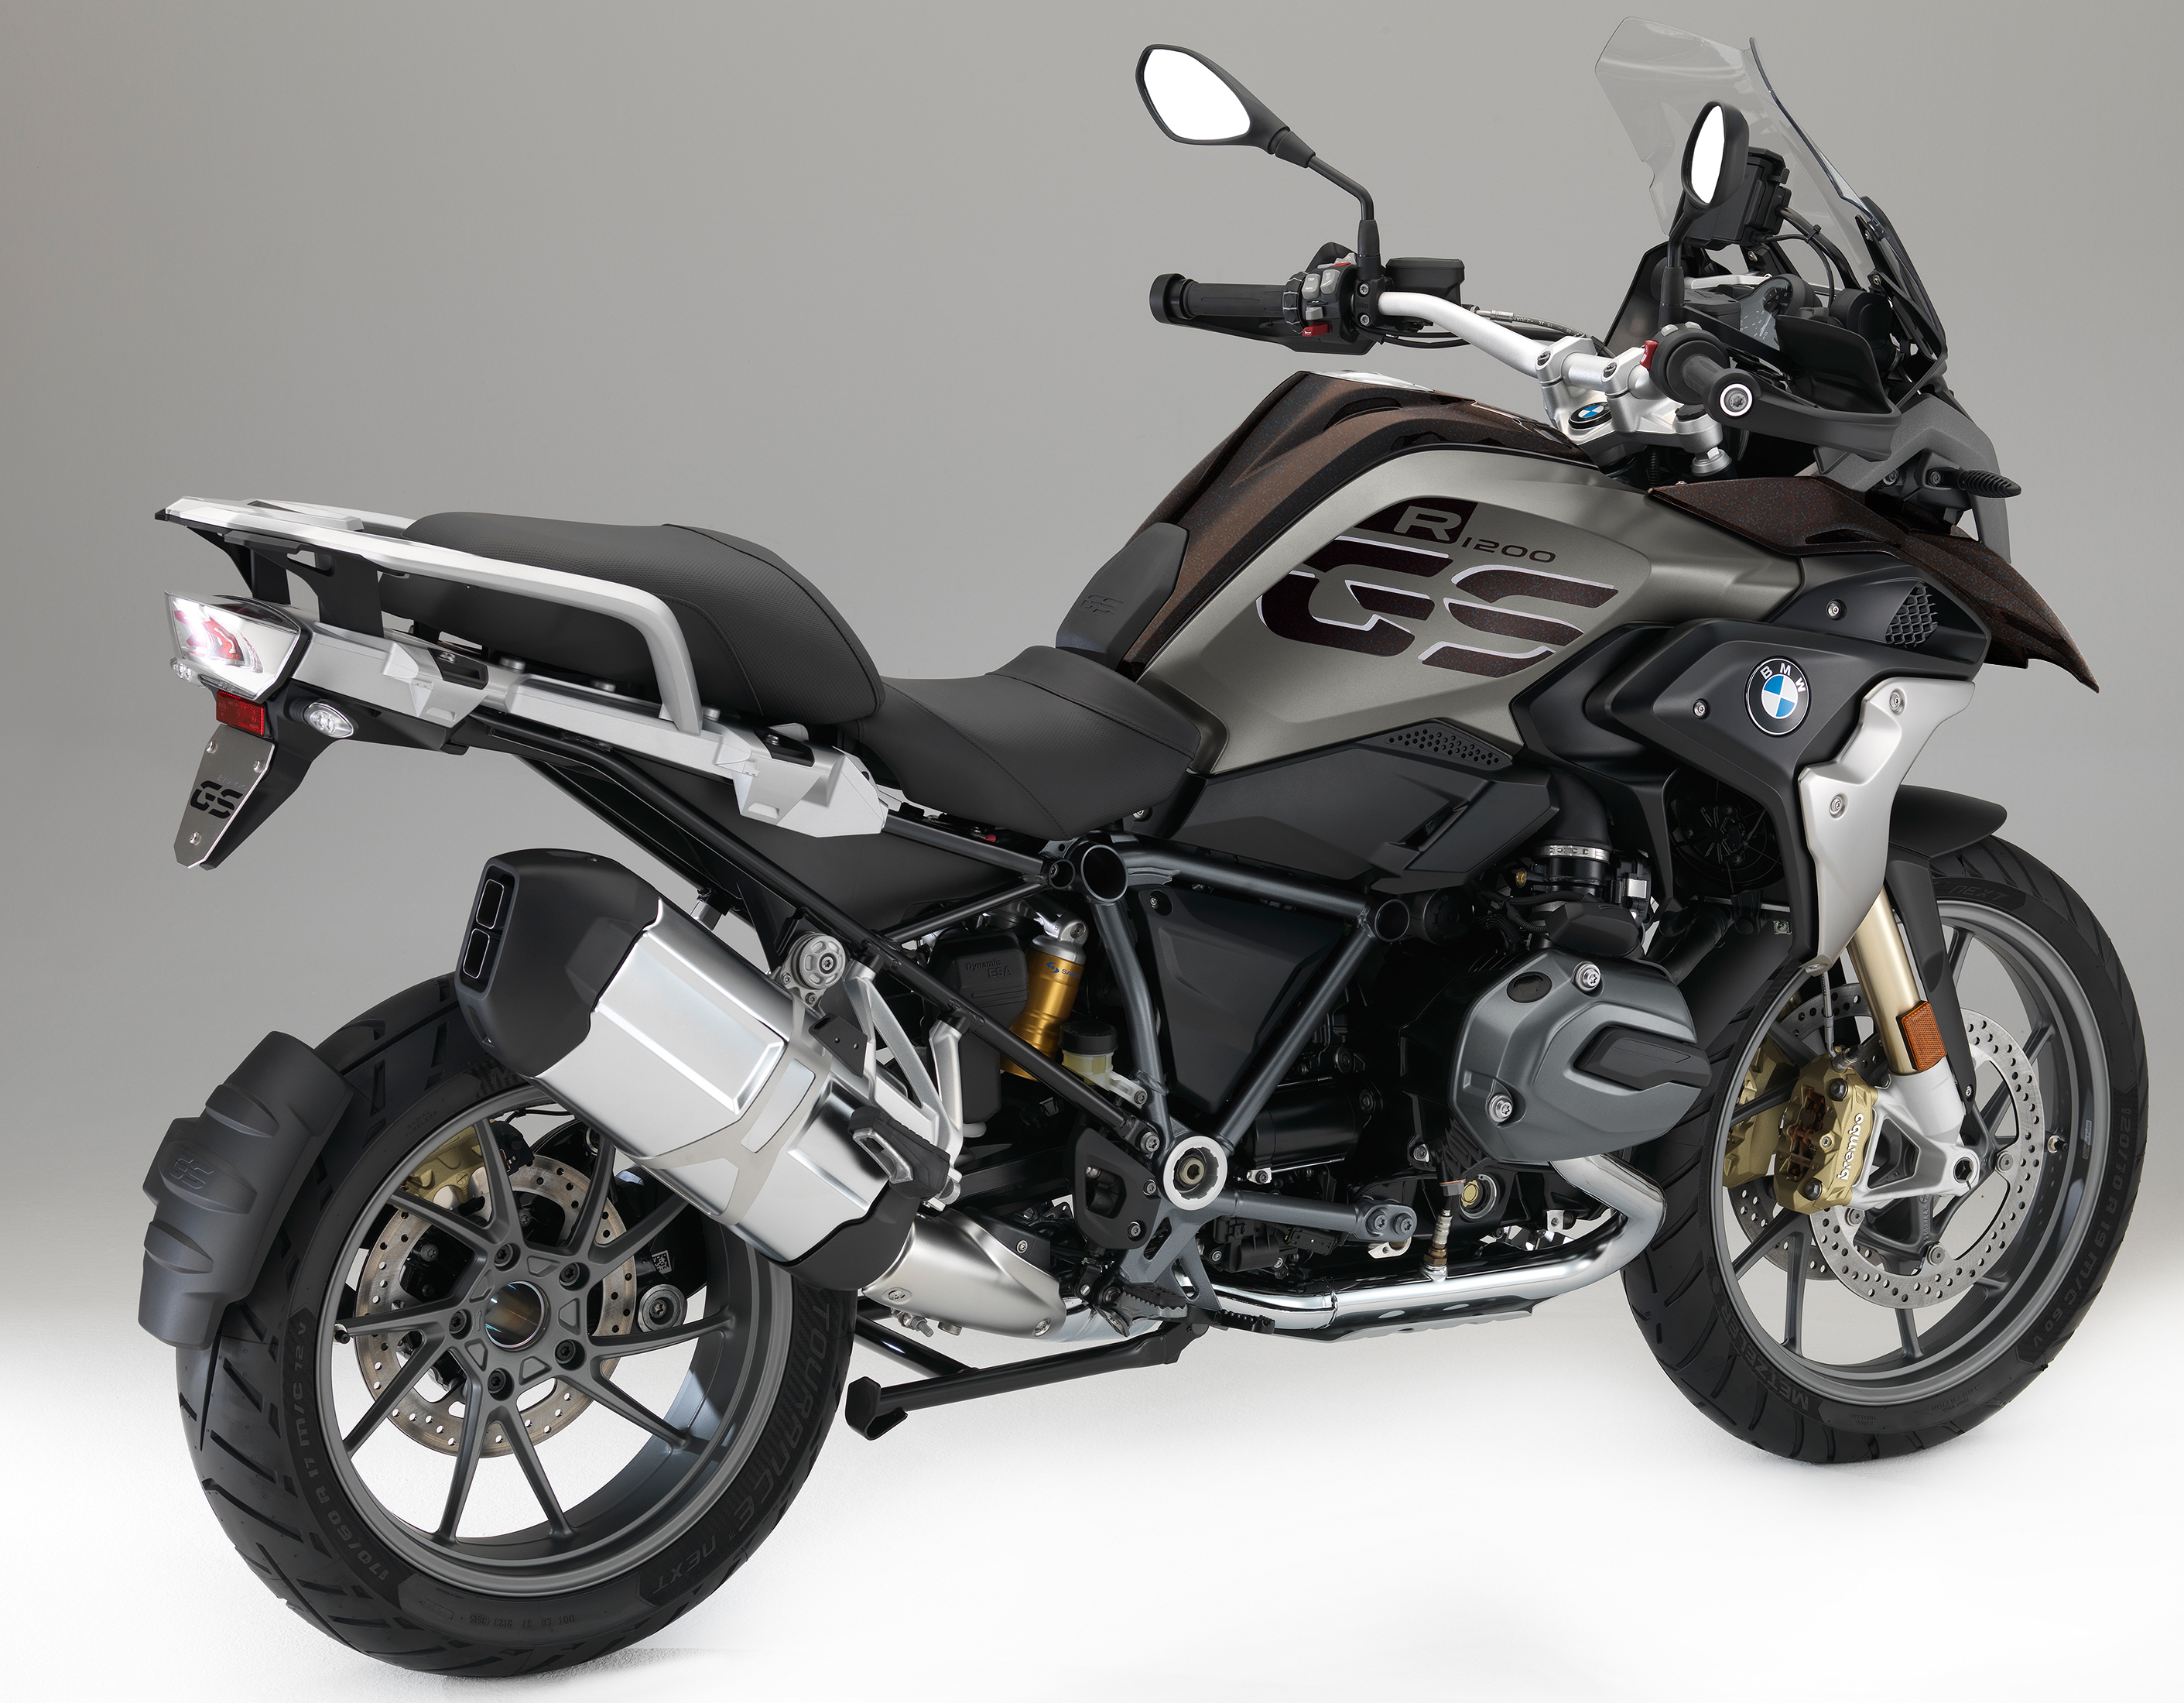 2017 bmw motorrad r1200 gs all new for 2017 with rallye. Black Bedroom Furniture Sets. Home Design Ideas